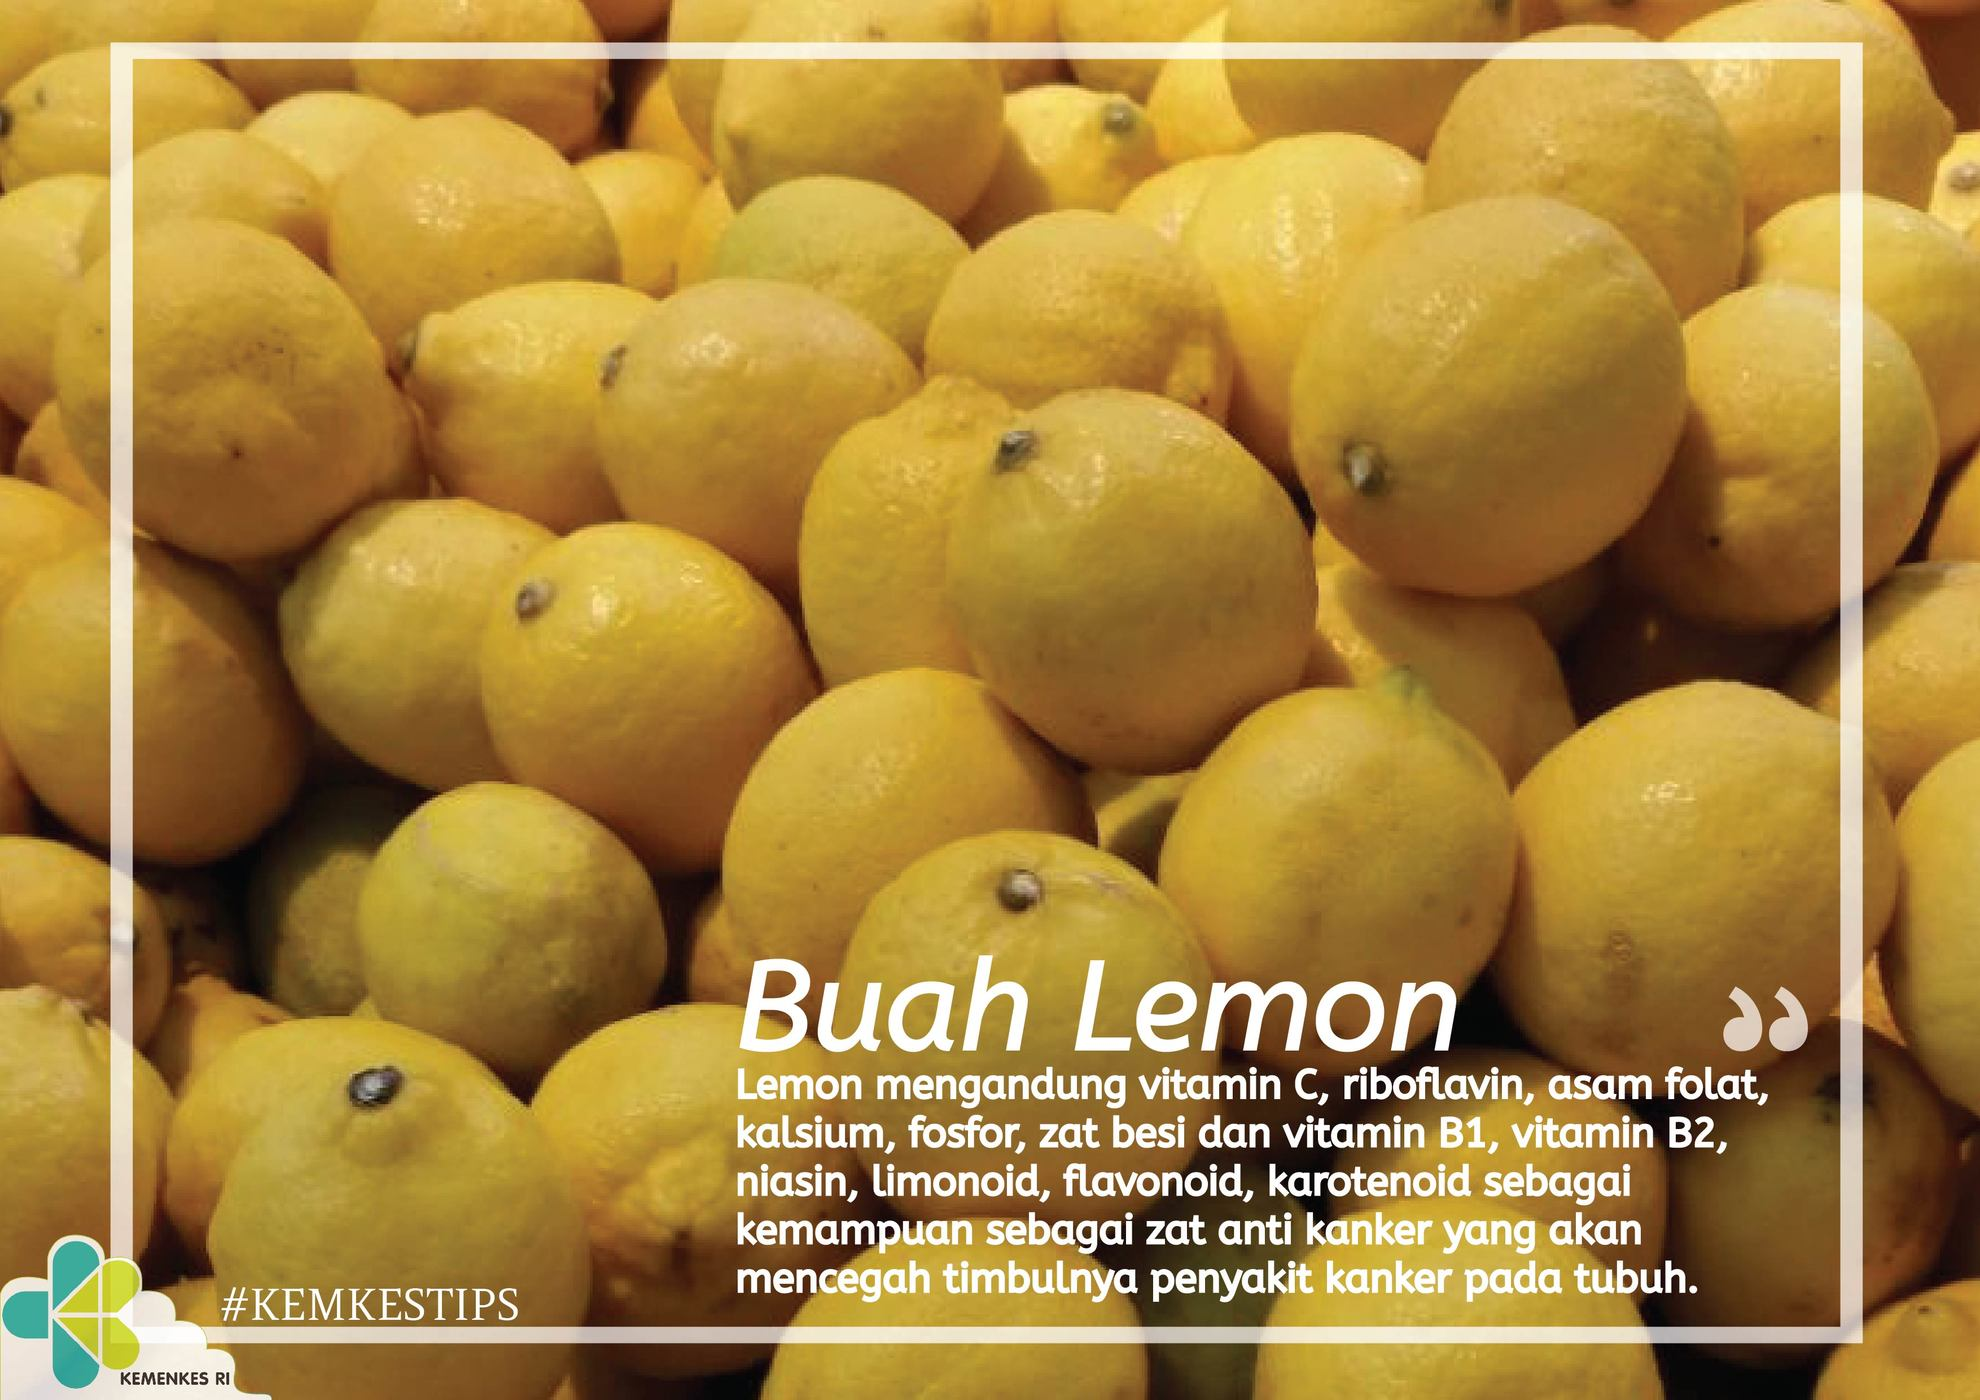 tips-buah-lemon-landscape-01